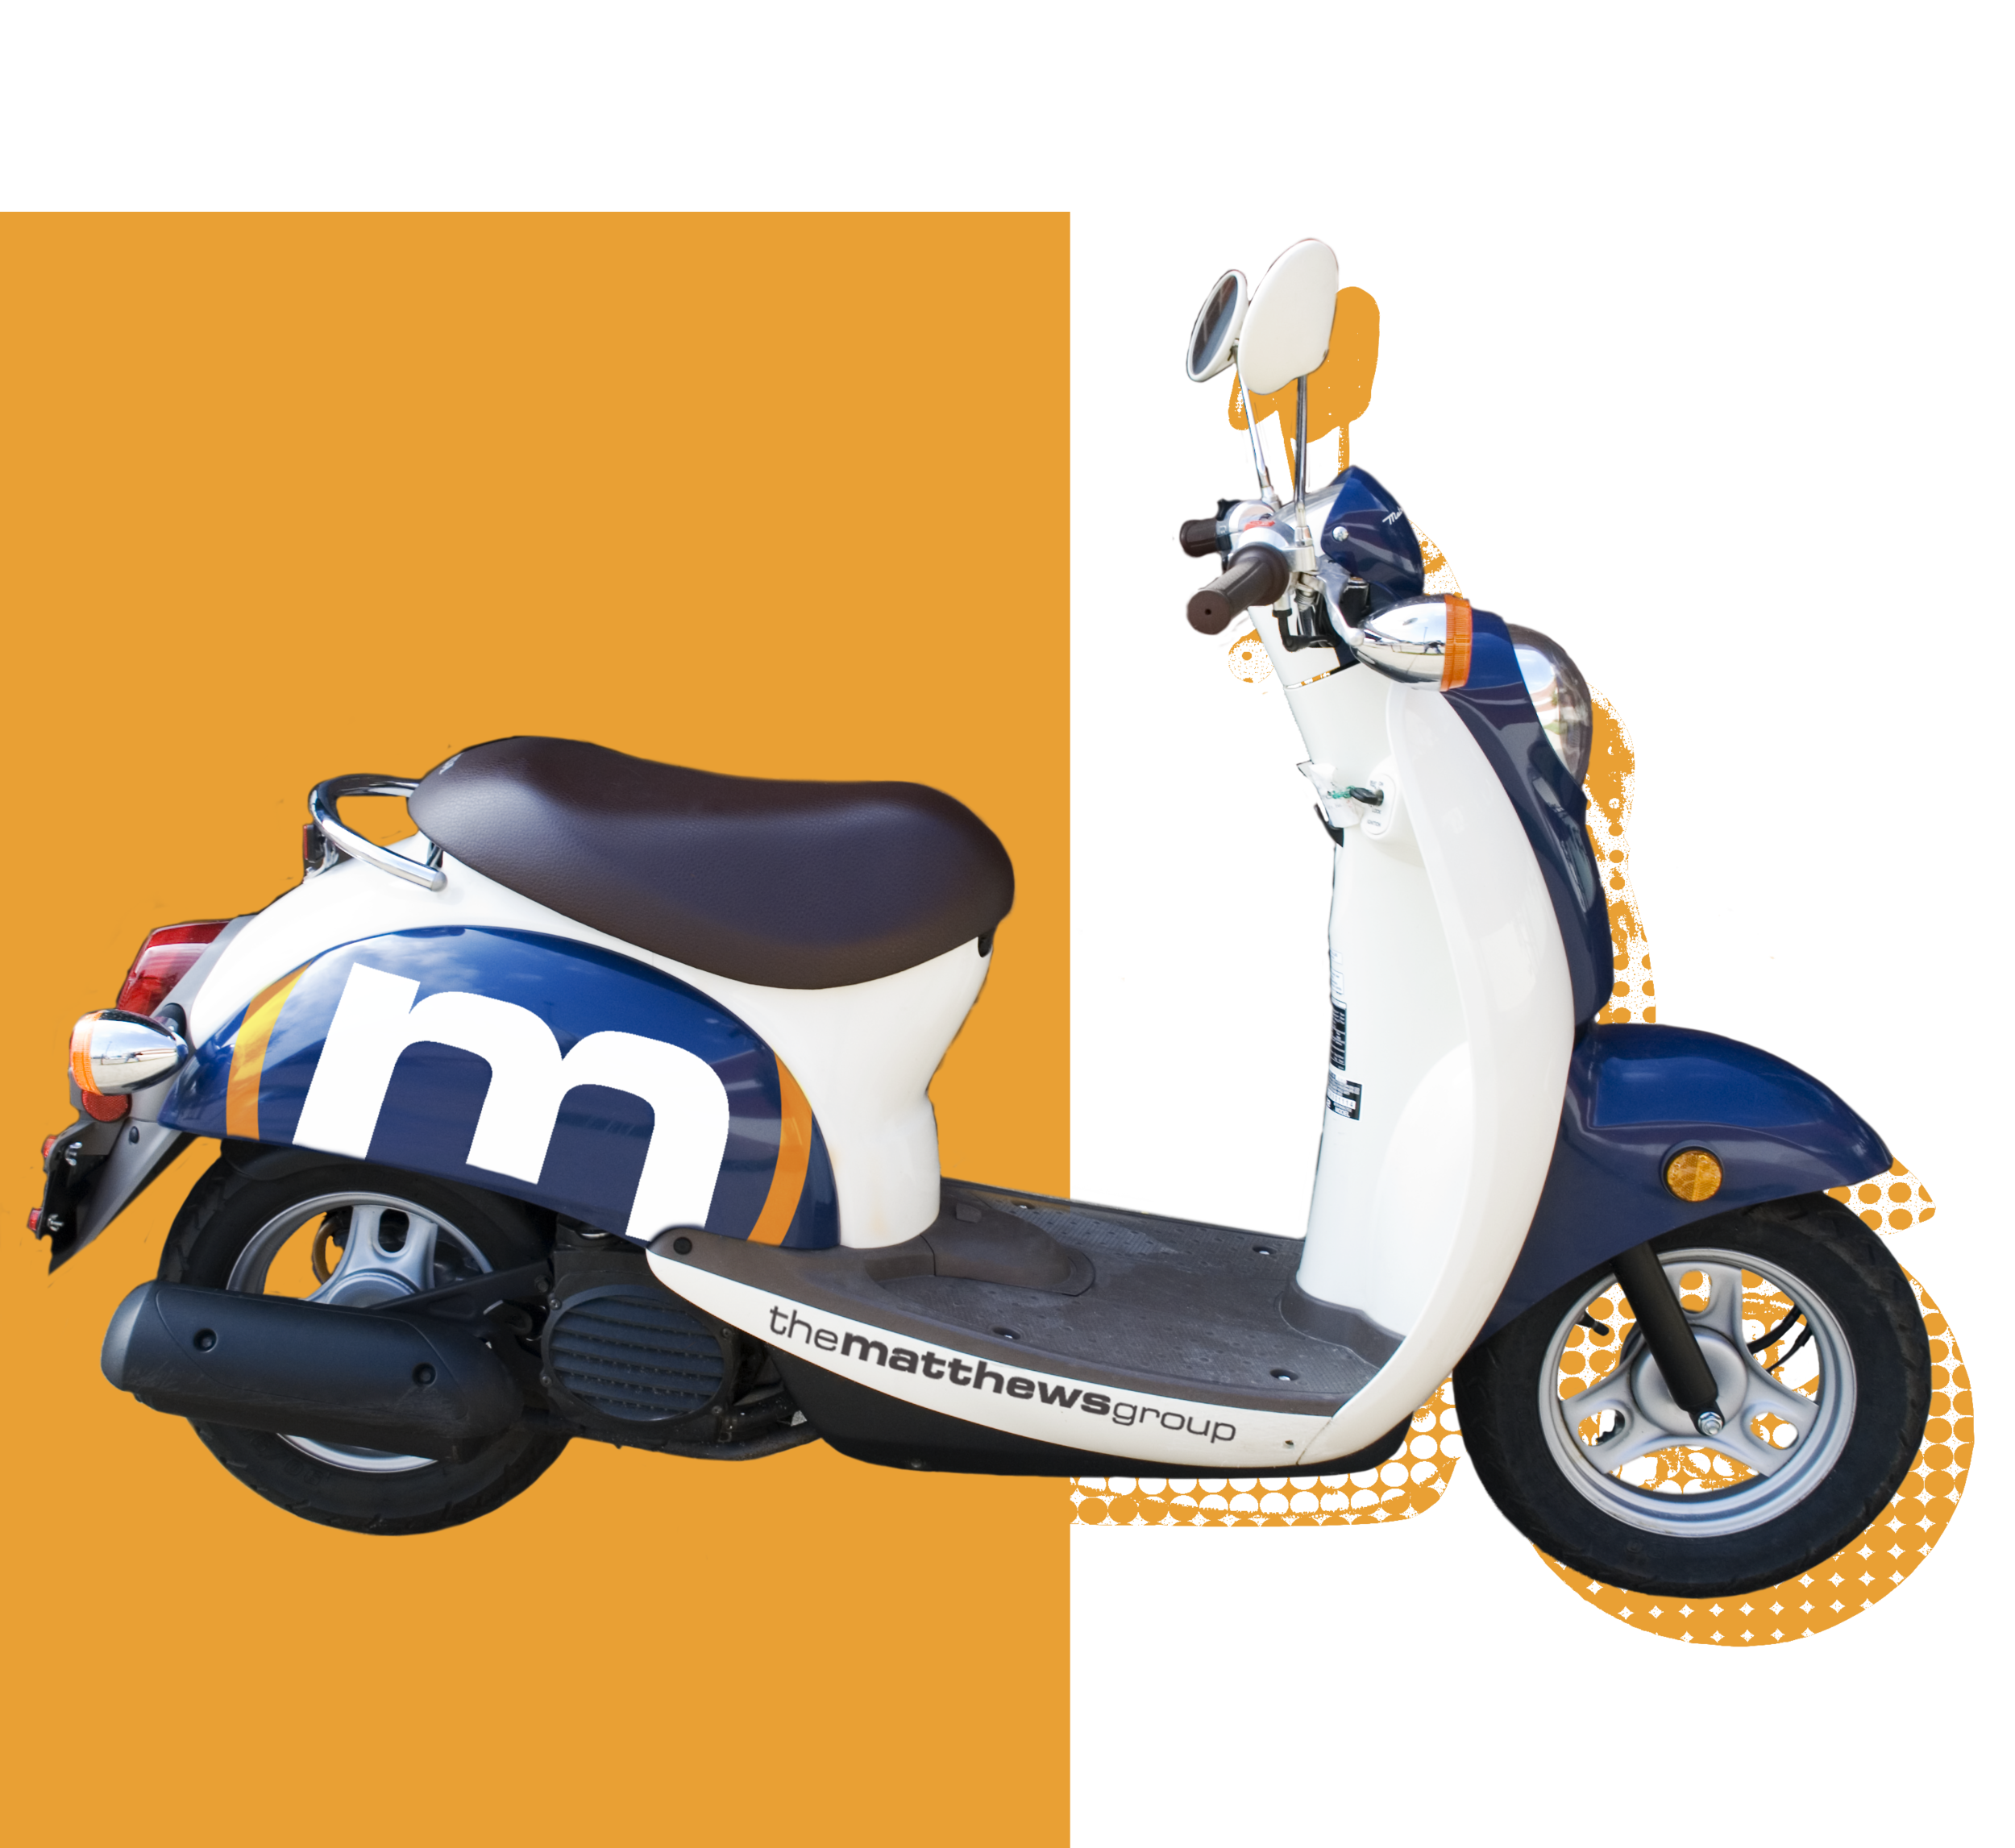 TMG Scooter side view3.png